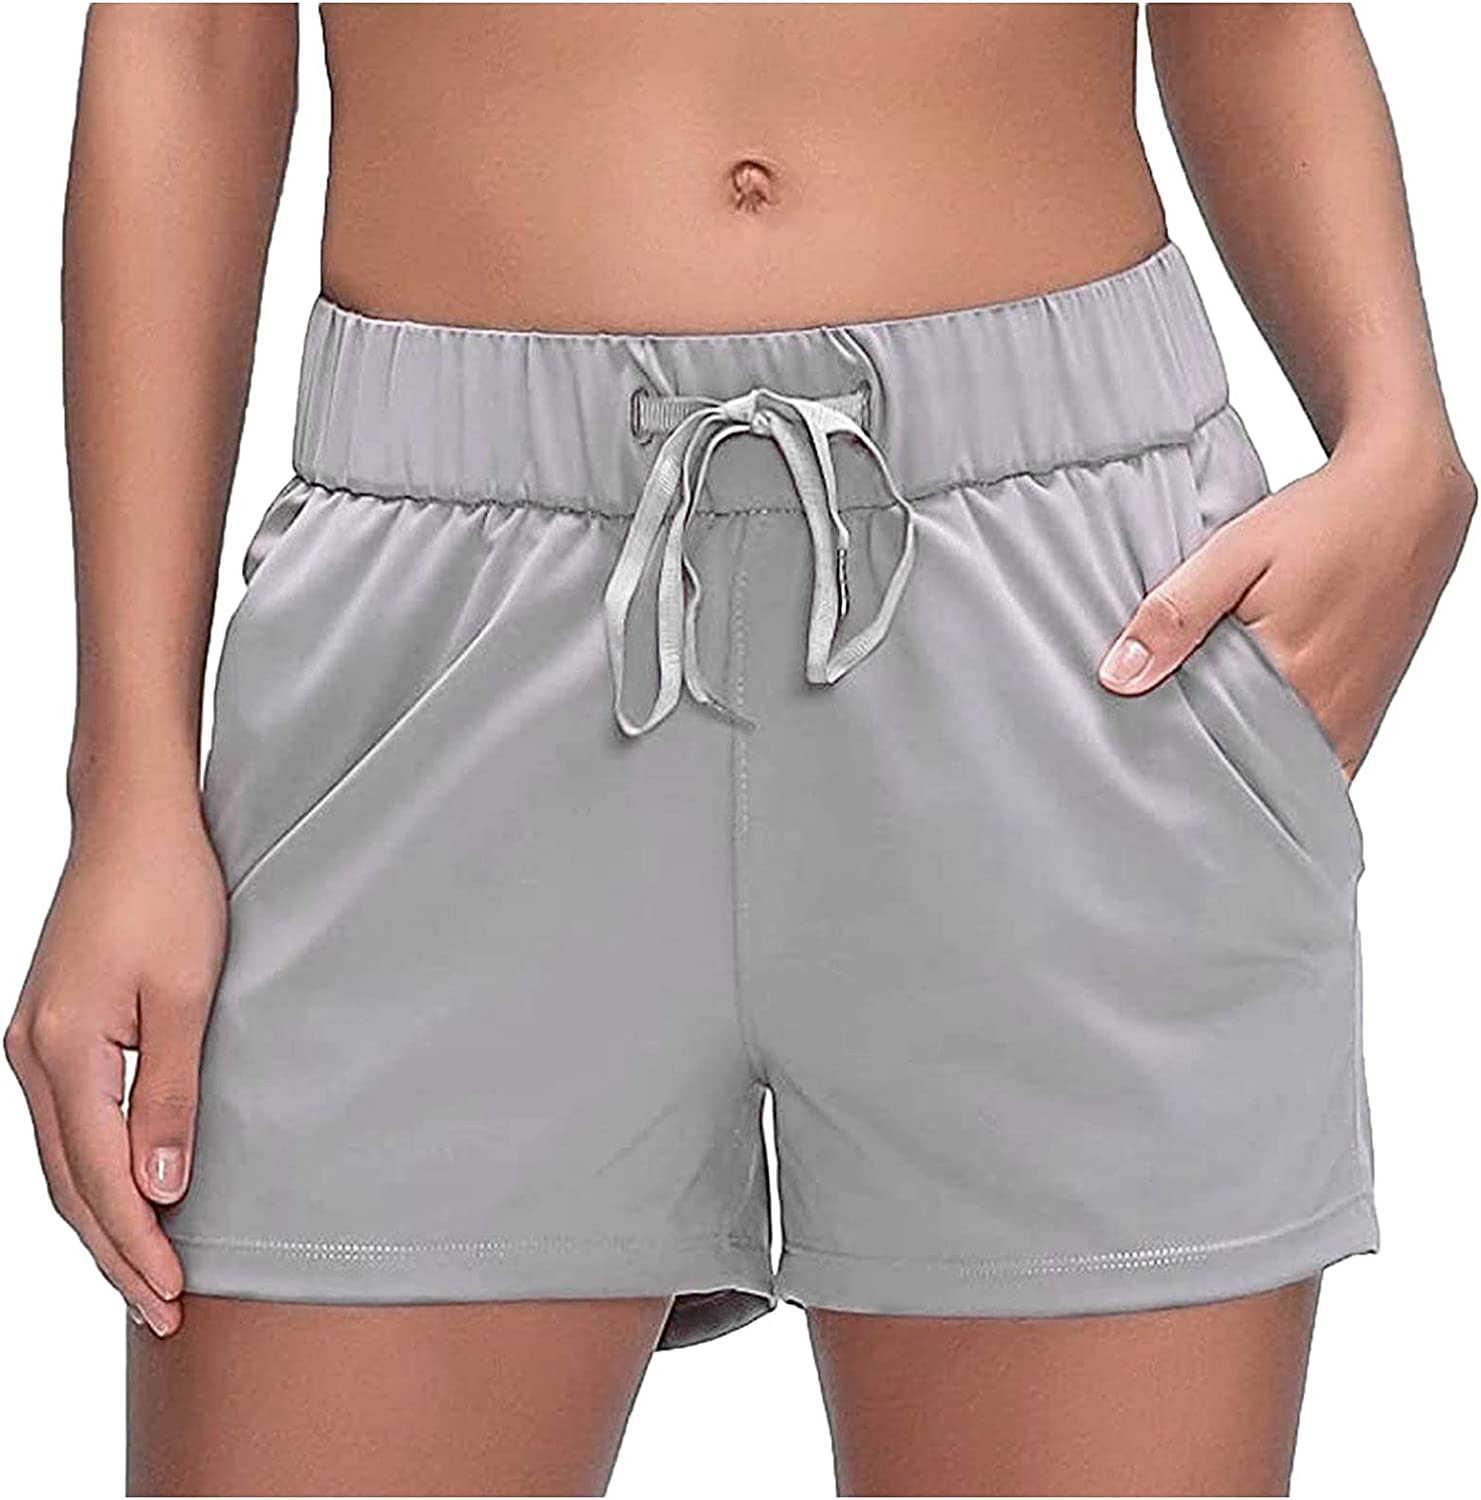 40% OFF Cheap Sale Meengg Womens Casual Max 40% OFF Athletic Shorts Pants Worko Yoga High Waist